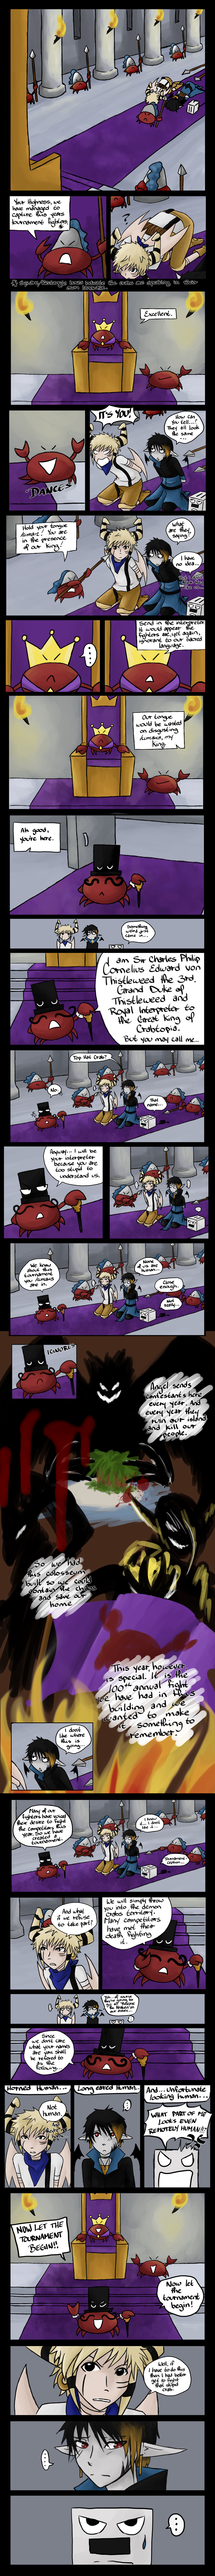 TOR - Round 2 - Part 7 by Shes-t